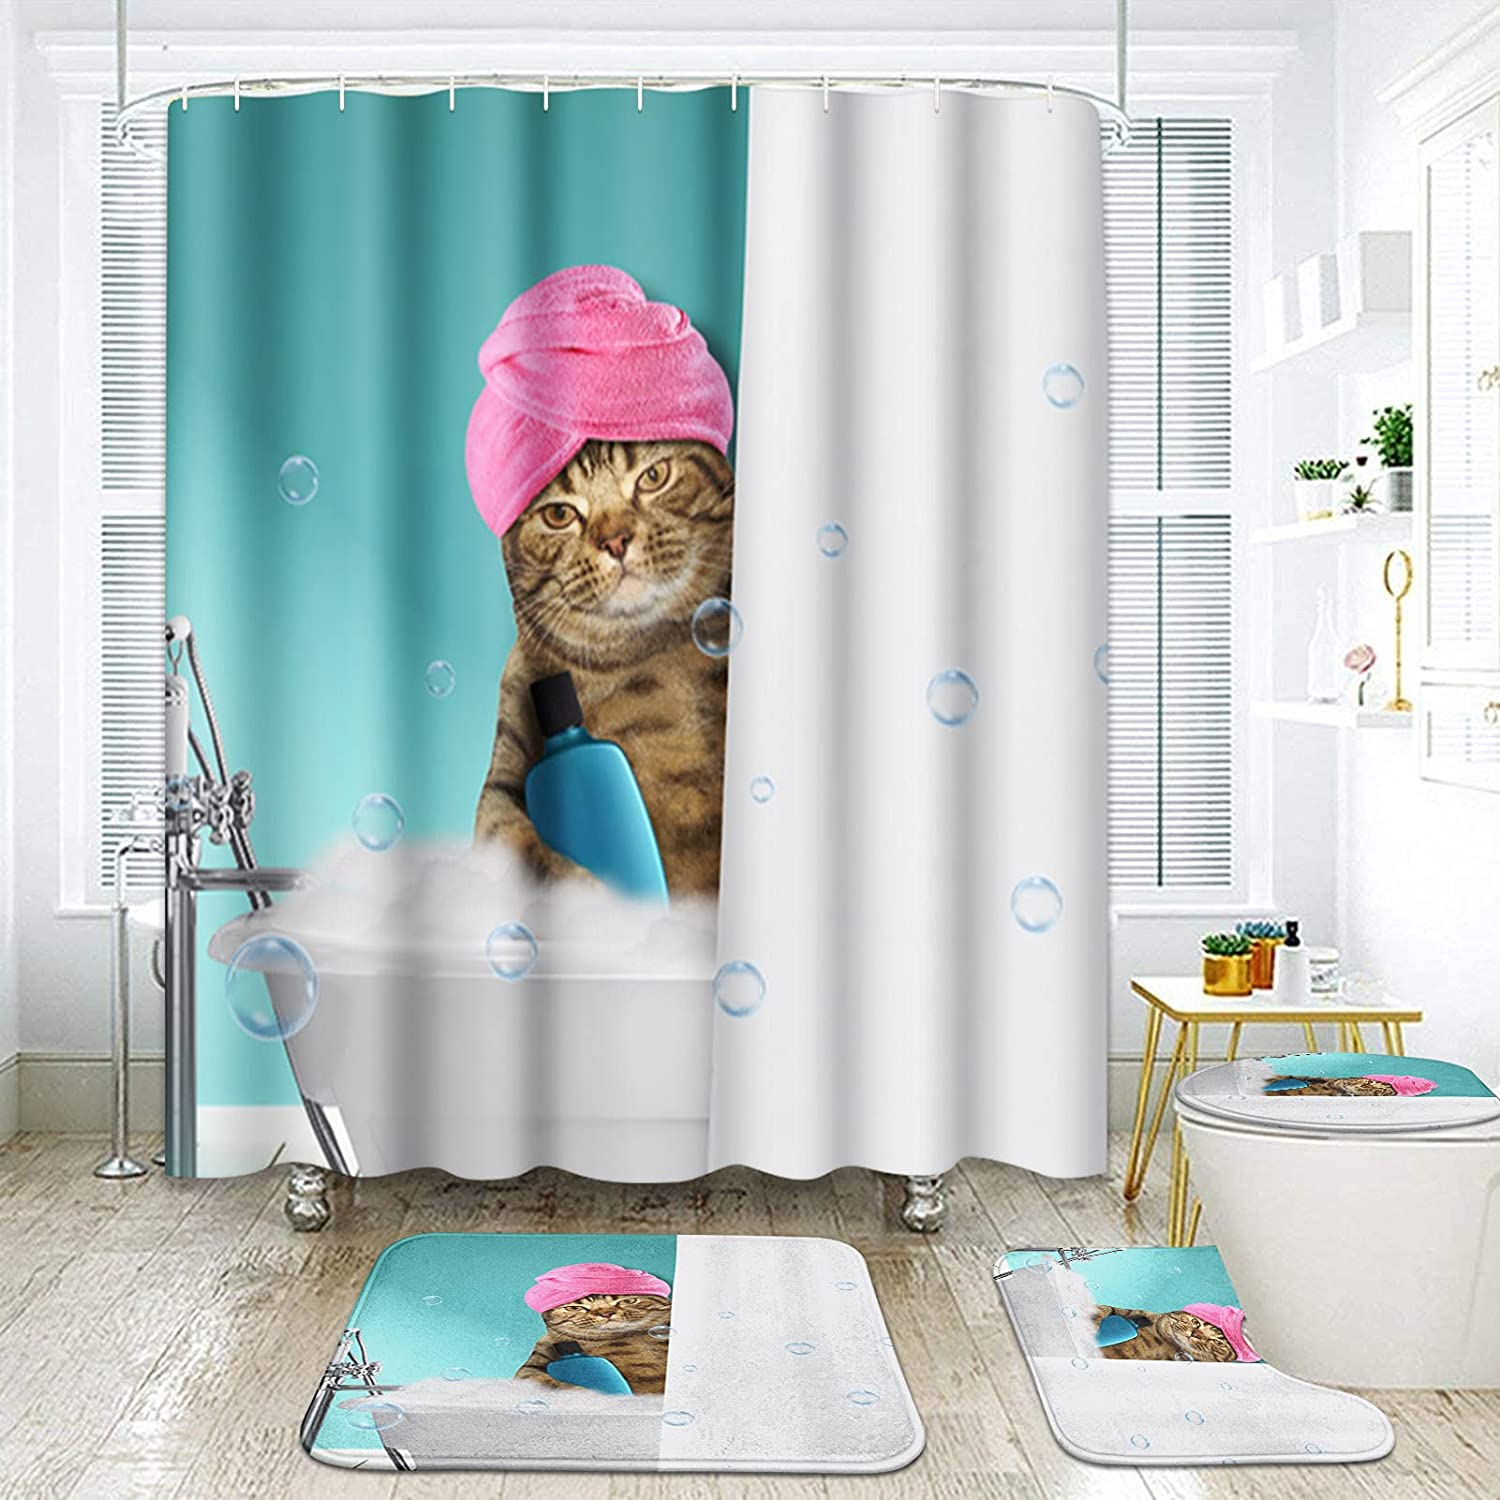 ArtSocket 4 Pcs Shower Curtain Set a Ranking integrated 1st place Shipping included Bath Blue Taking Cat Summer